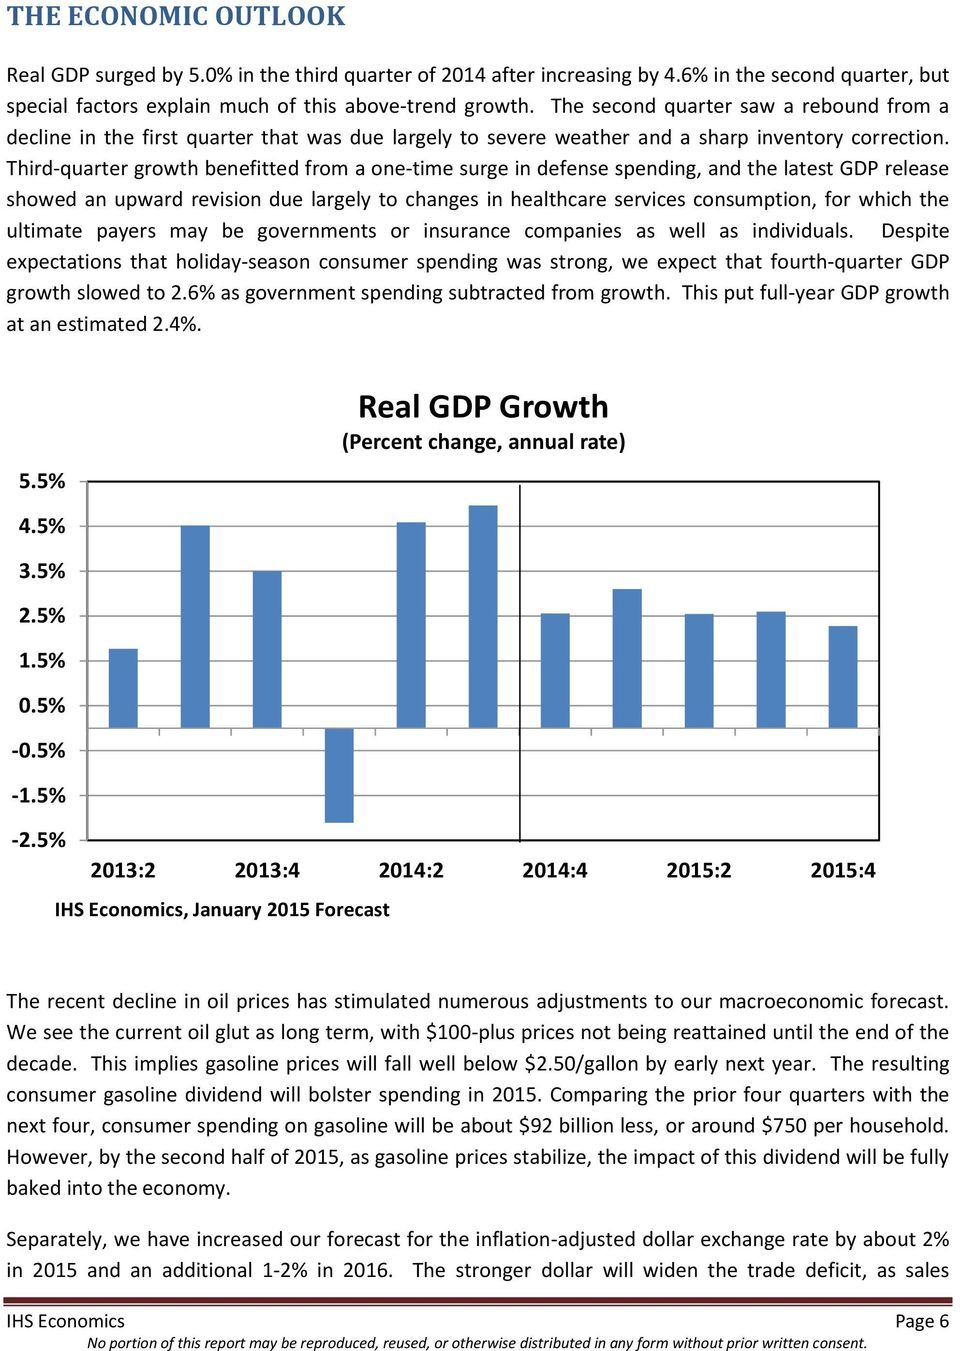 Third-quarter growth benefitted from a one-time surge in defense spending, and the latest GDP release showed an upward revision due largely to changes in healthcare services consumption, for which